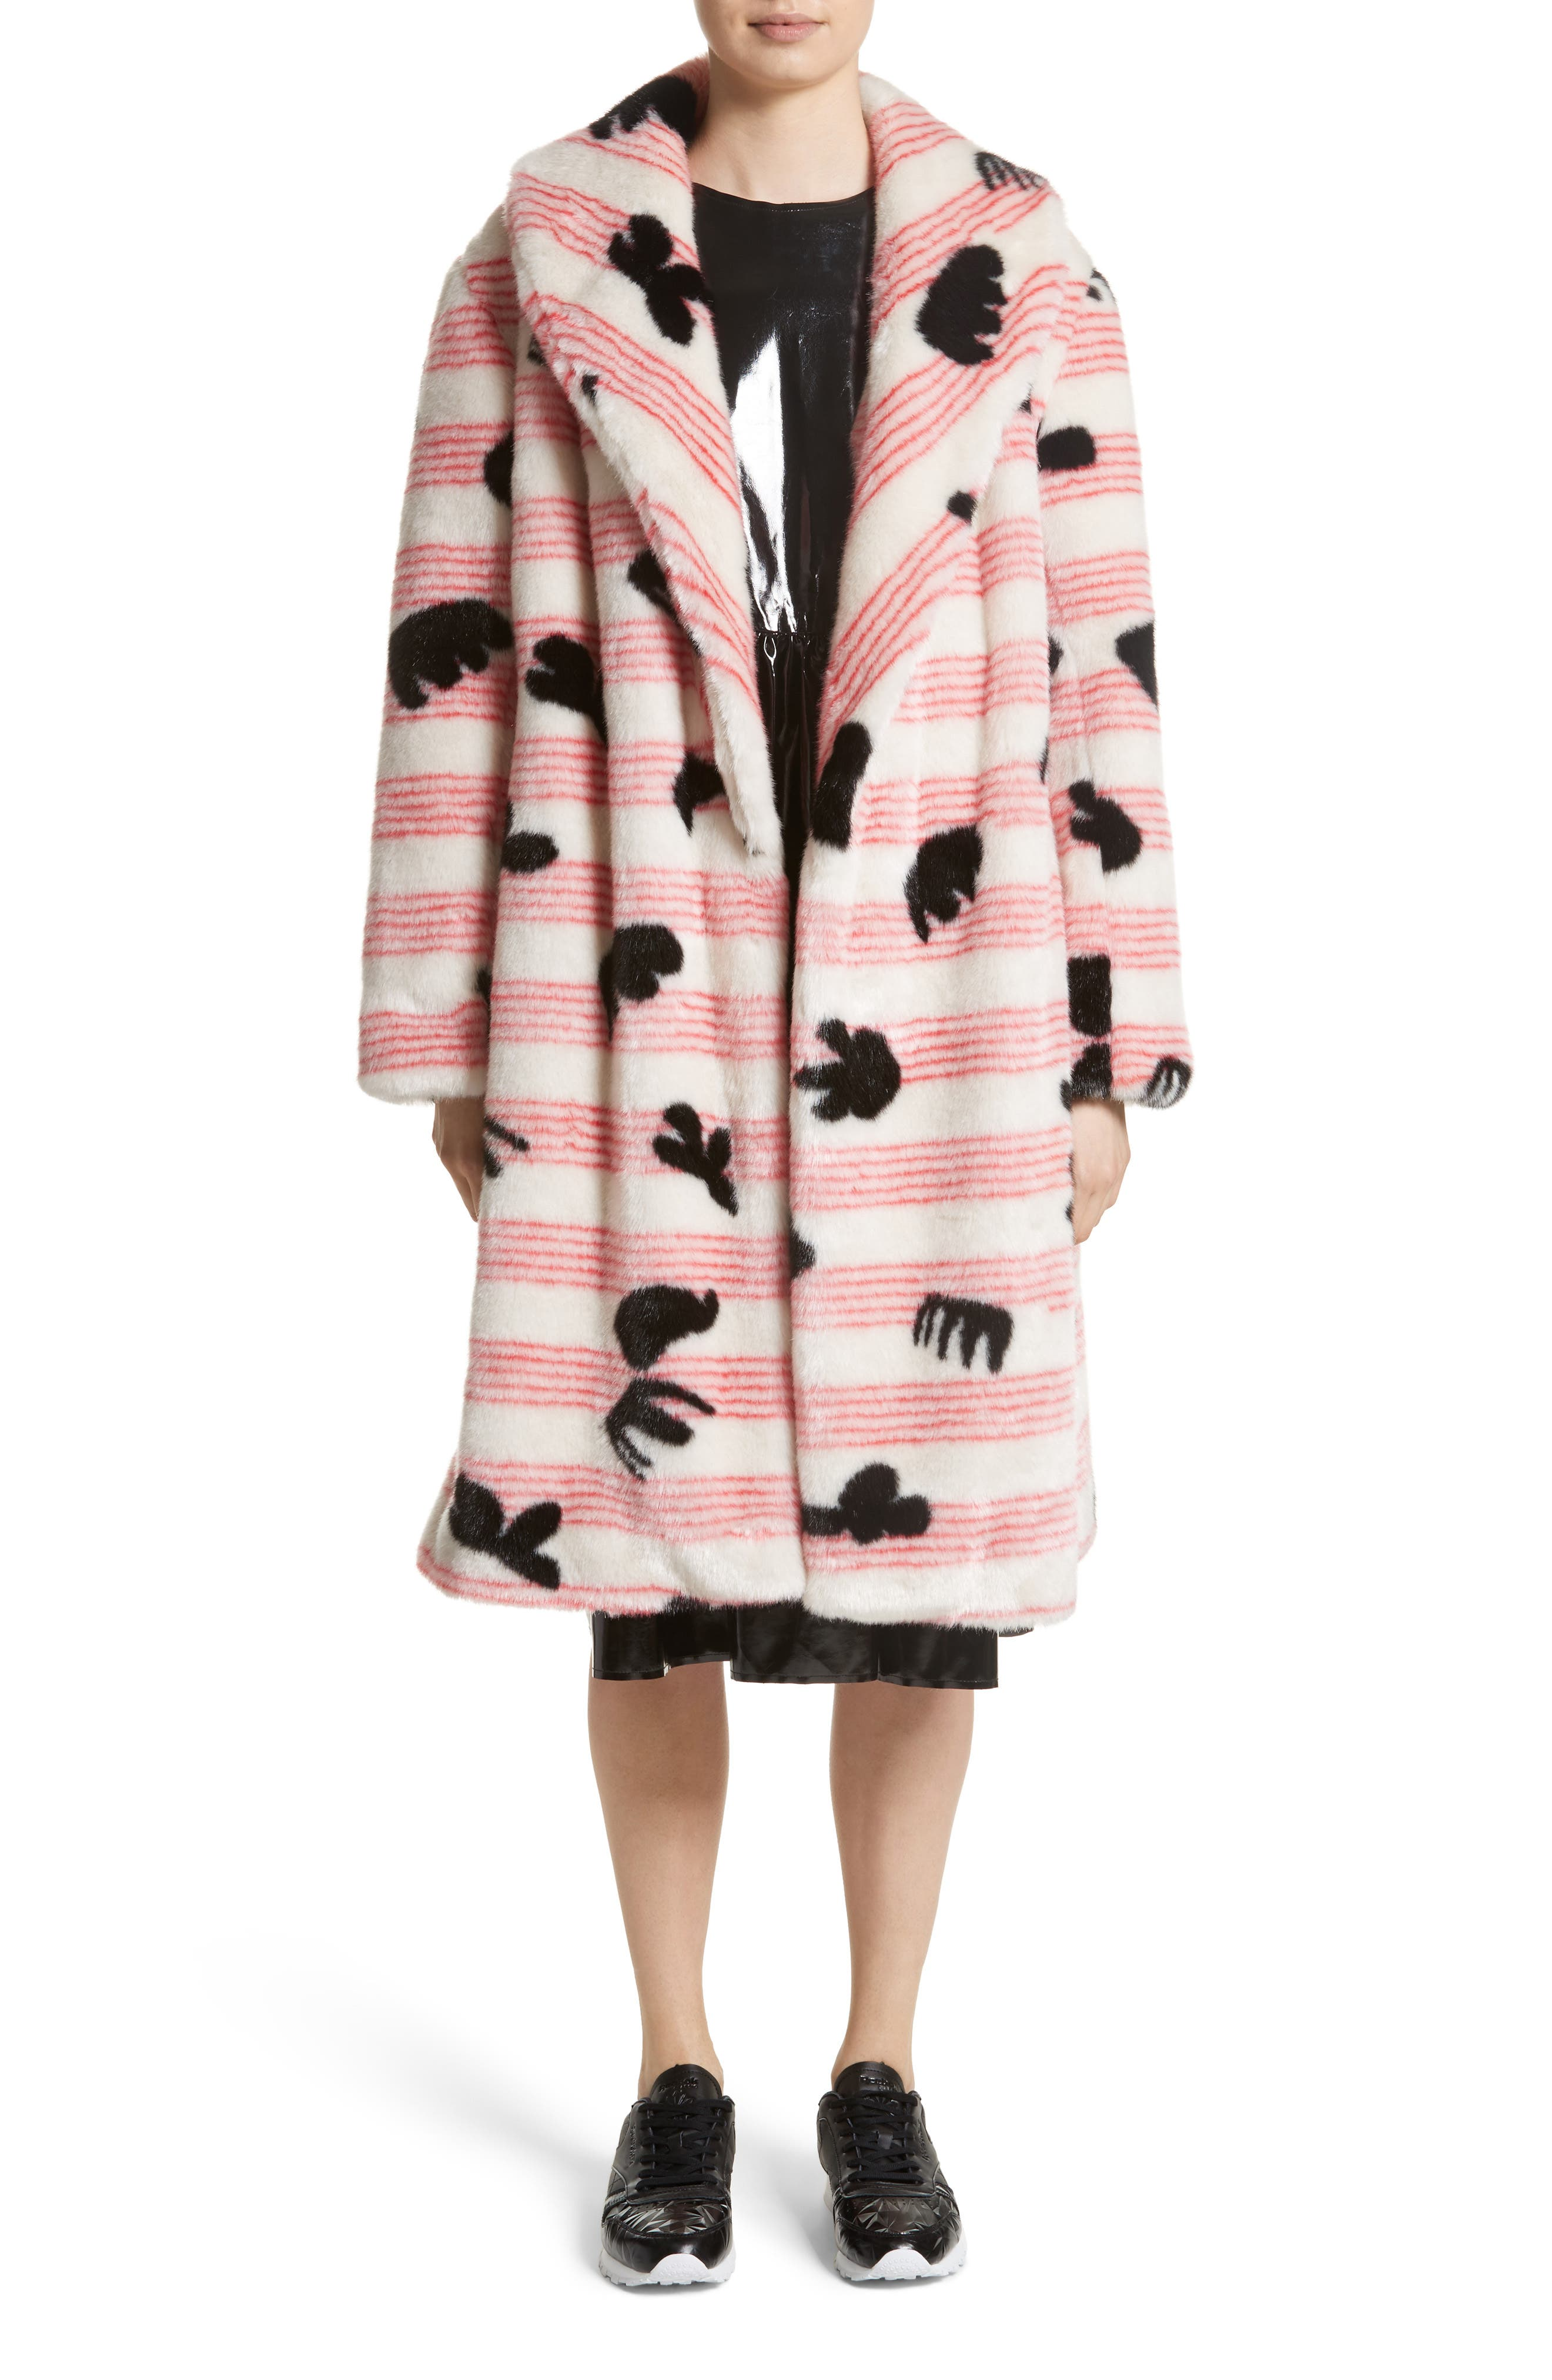 Alternate Image 1 Selected - Shrimps Elspeth Faux Fur Coat (Nordstrom Exclusive)